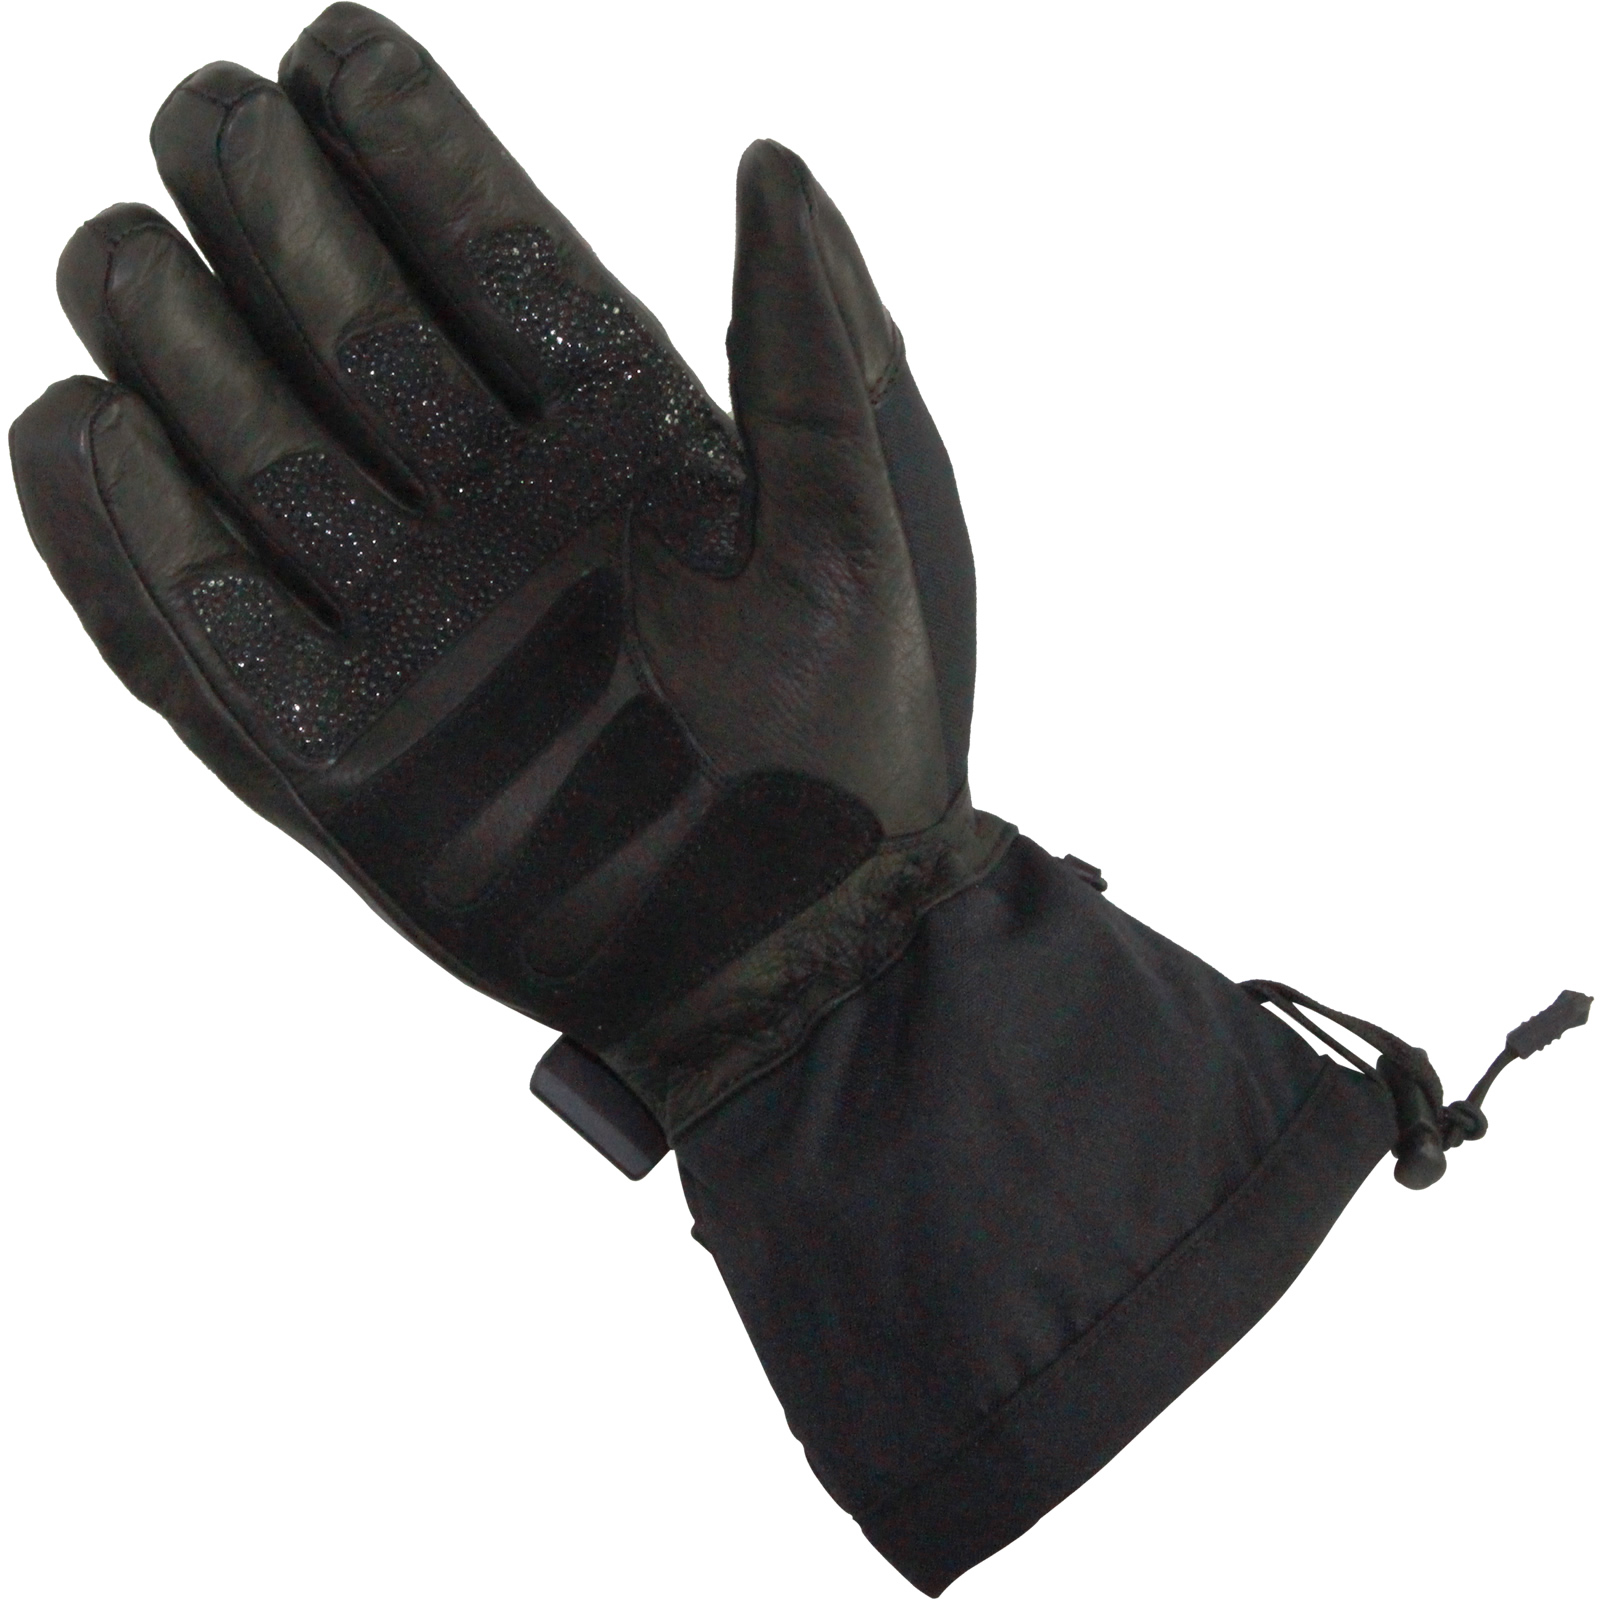 Motorcycle gloves all season - Sports Comm Waterproof All Season Leather Textile Motorcycle